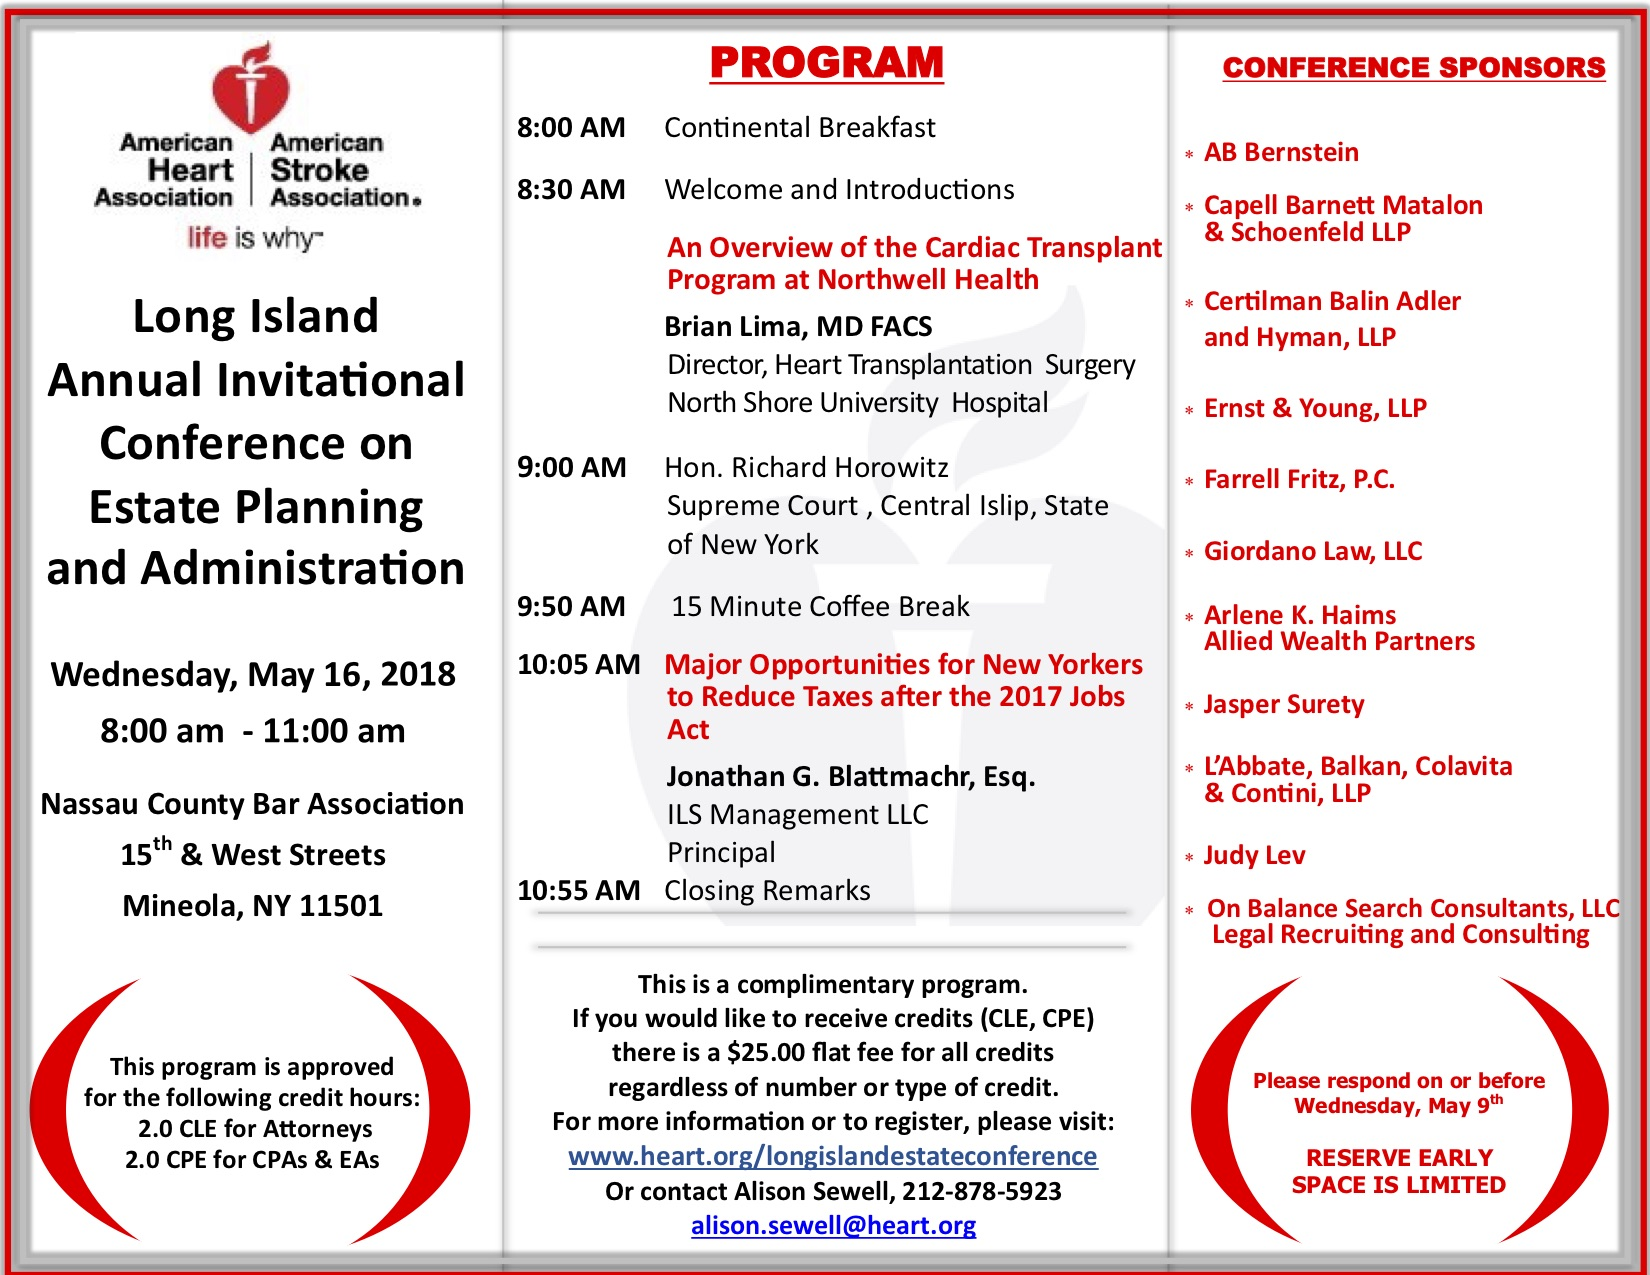 8th Annual Long Island Invitational Conference on Estate Planning and Administration